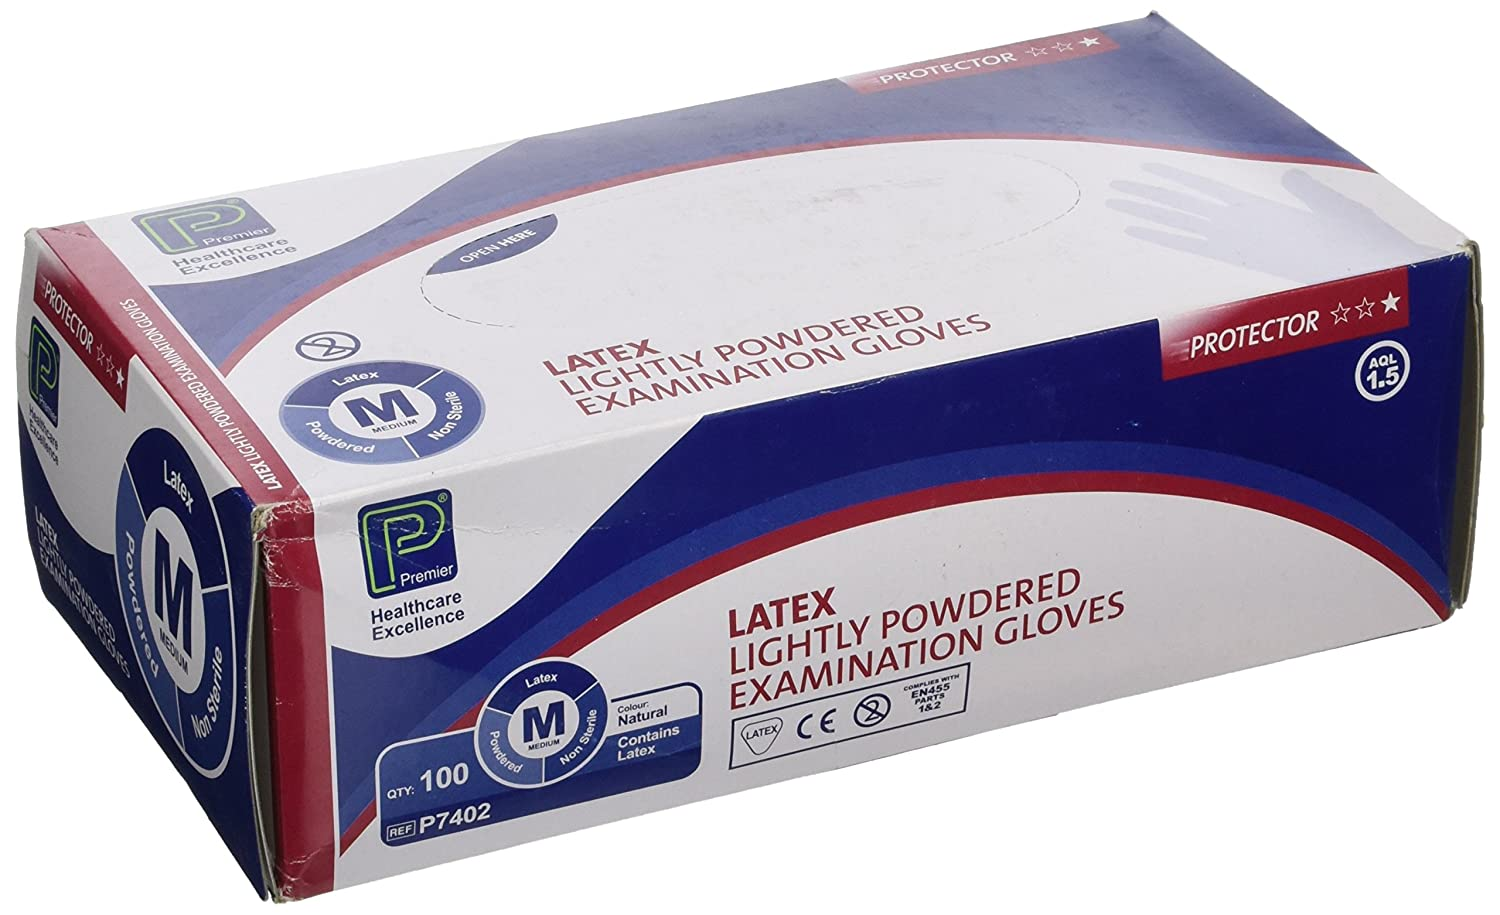 Premier PMP7402 Latex Examination Gloves M Pack of 100